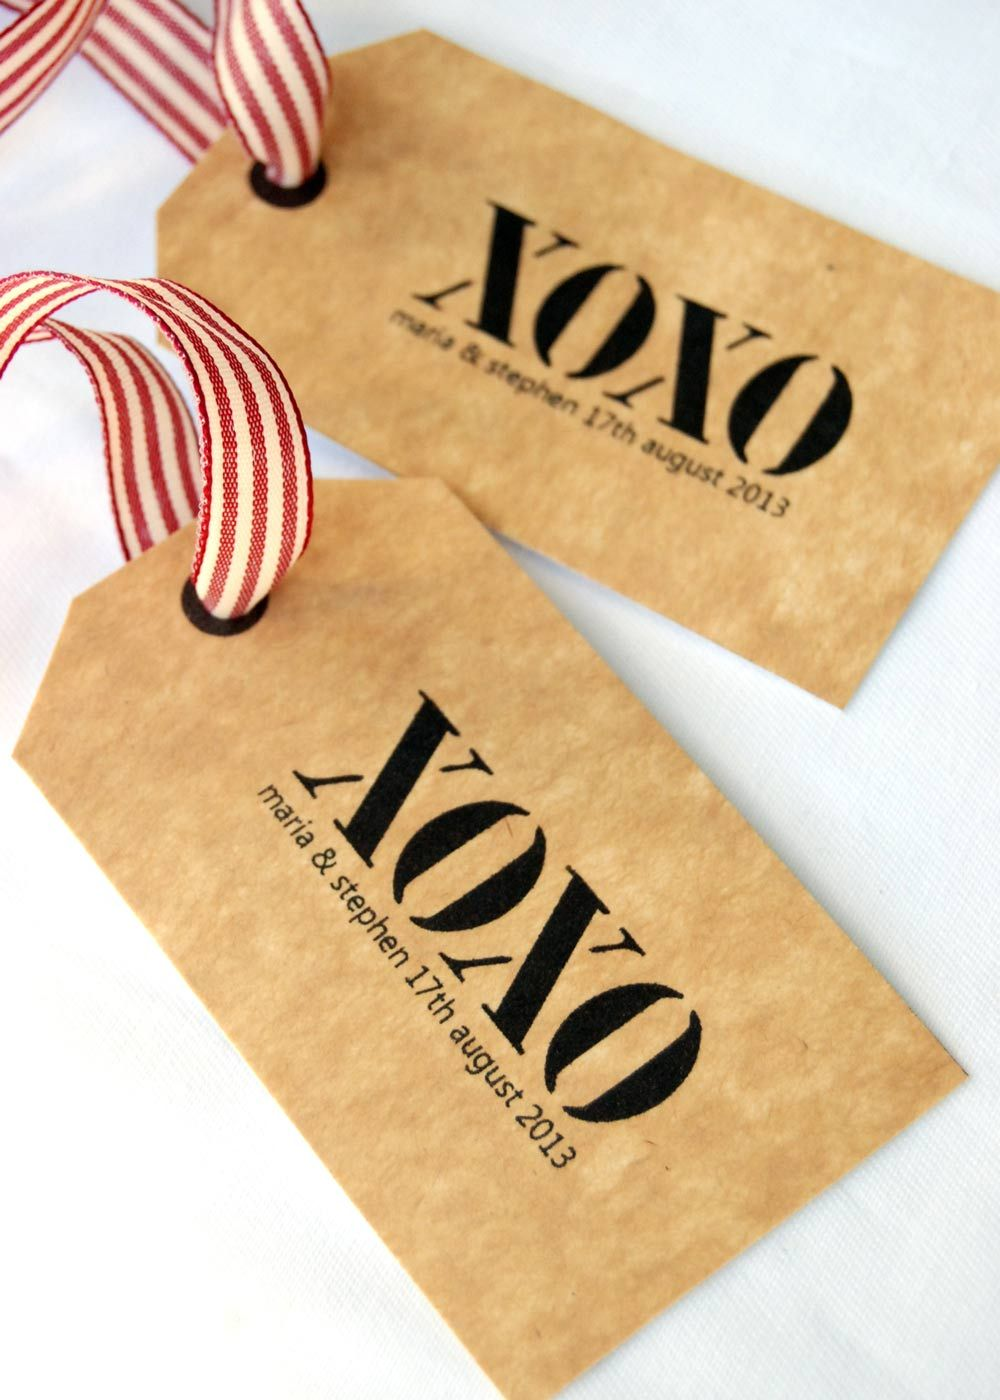 Xoxo large wedding gift tags gift wrap bags tags pinterest diy wedding small gift tags an easy do it yourself project solutioingenieria Images